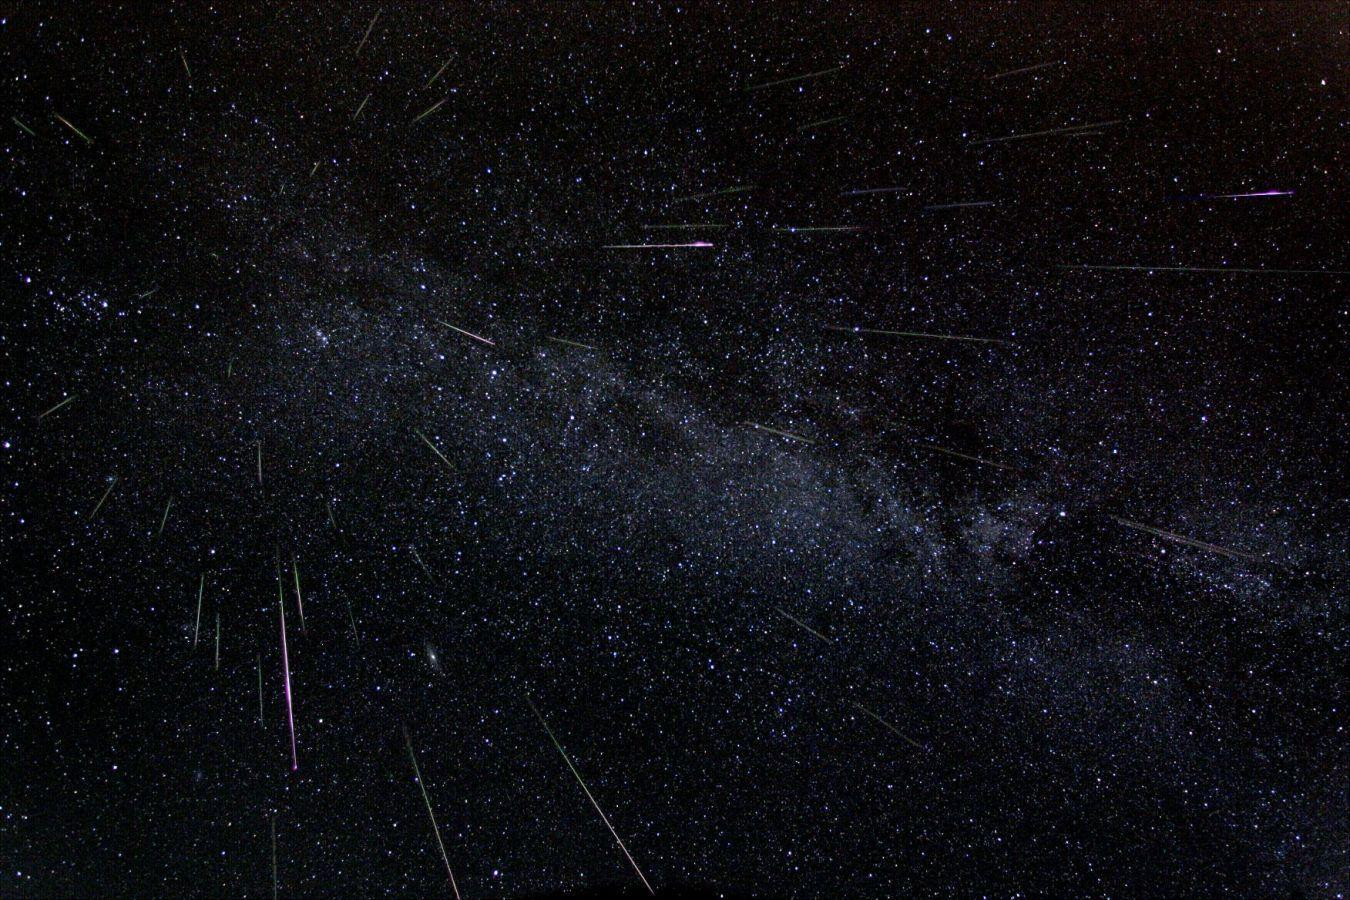 The Most Surprising Facts About the Perseid Meteor Shower